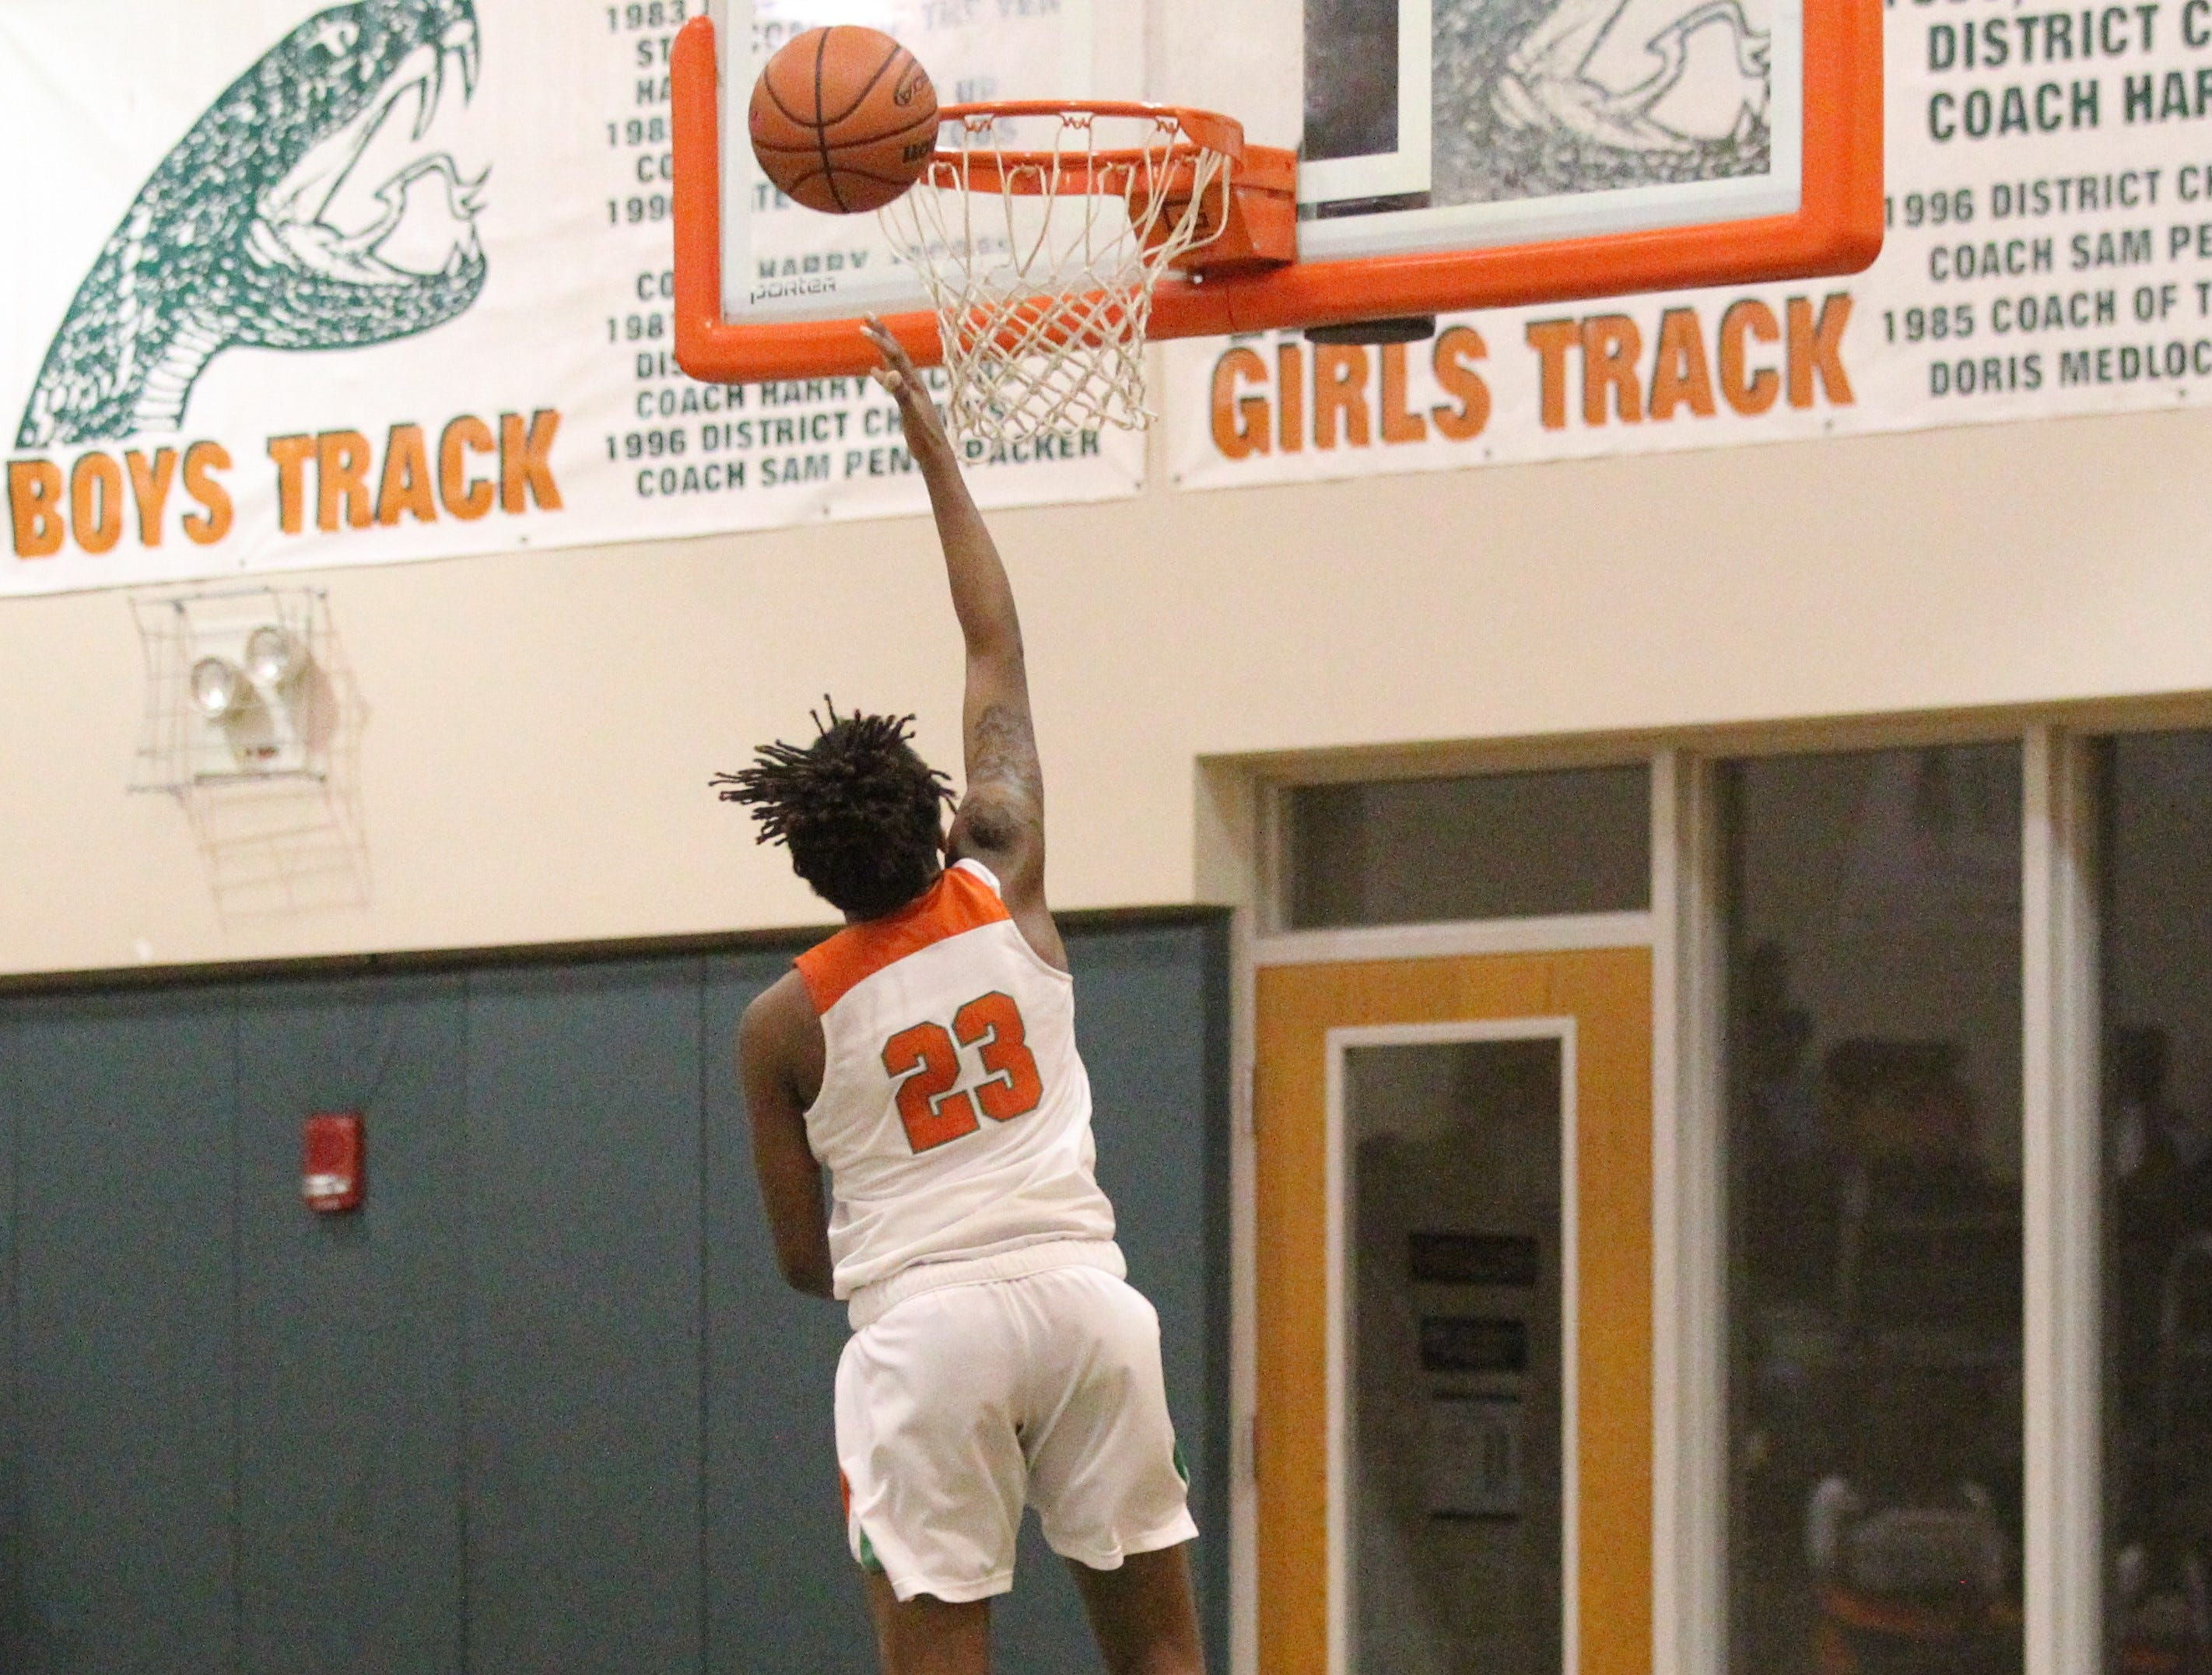 FAMU DRS senior Ayleshia Vickers goes in for a layup off a steal as FAMU DRS' girls basketball team beat NFC 59-41 for a District 1-3A title on Jan. 7, 2019.